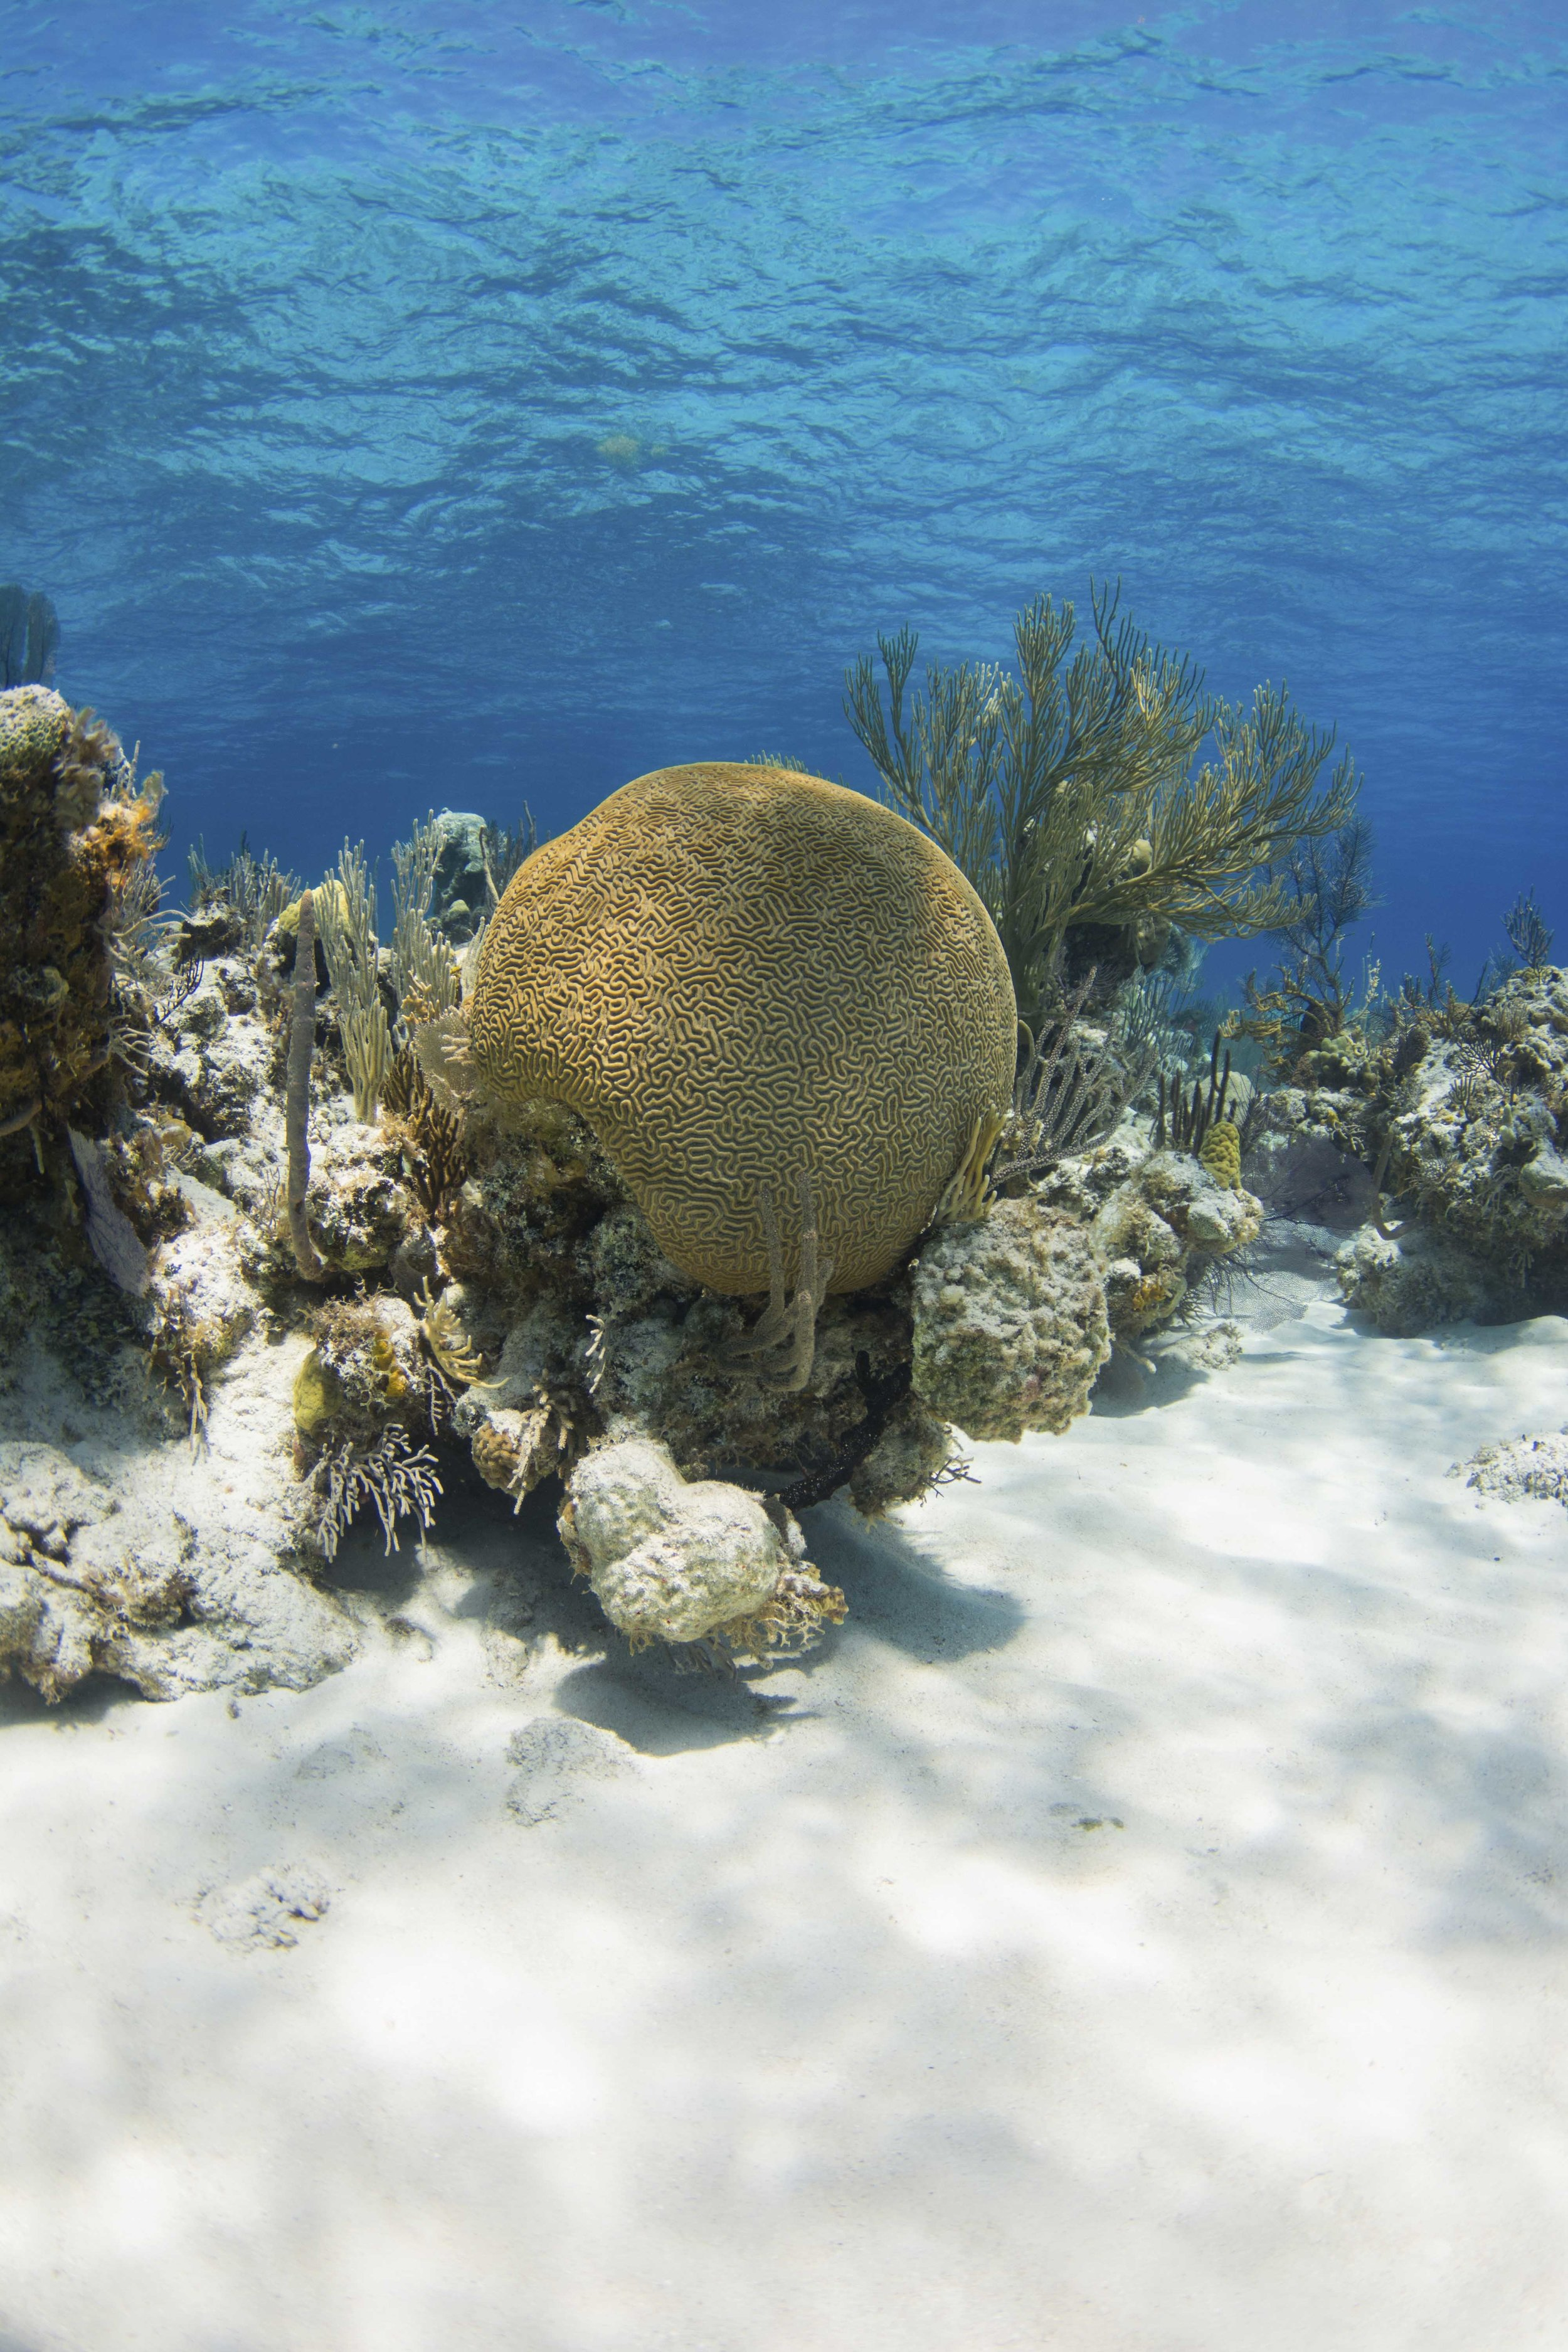 Andros is filled with stunning corals and reefs